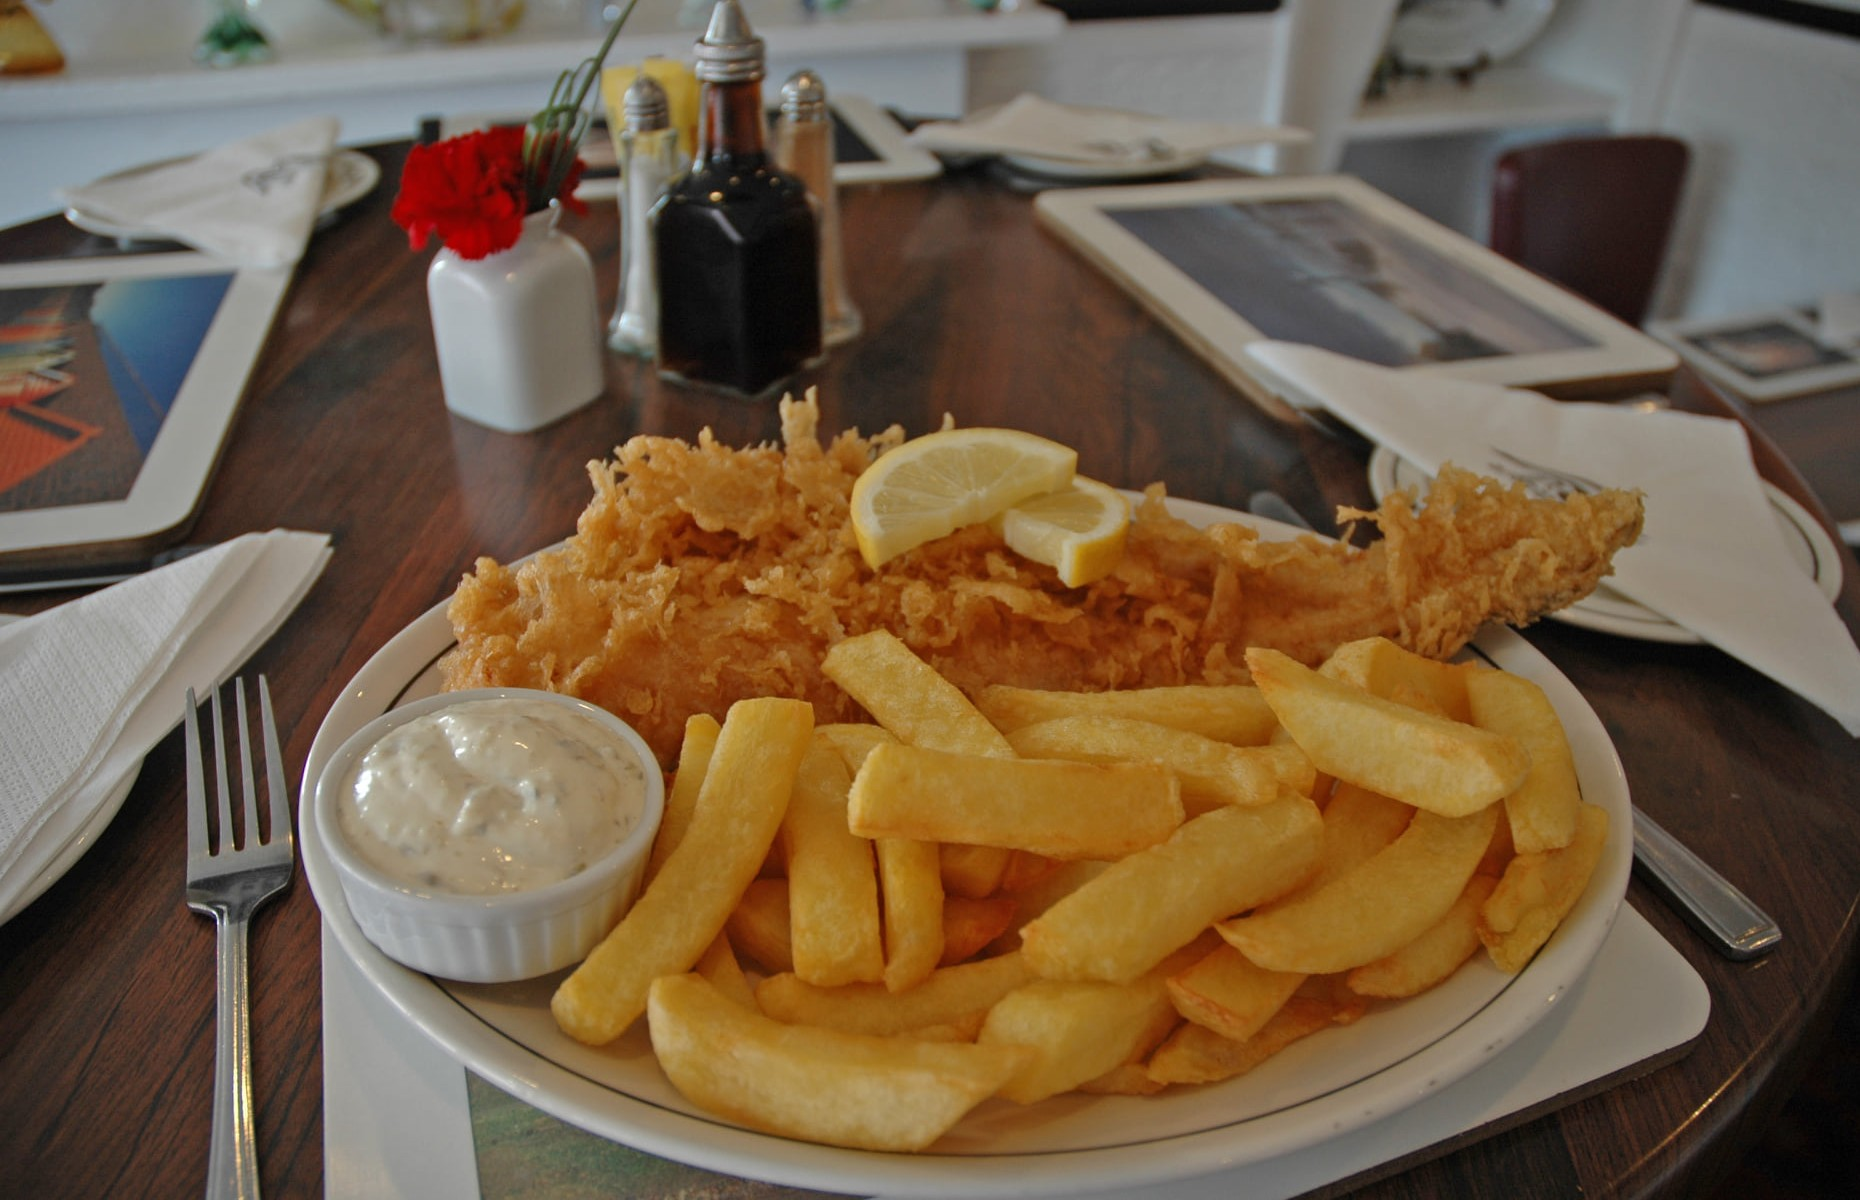 Fish and chips at the Magpie Cafe (Image: The Magpie Cafe/Facebook)